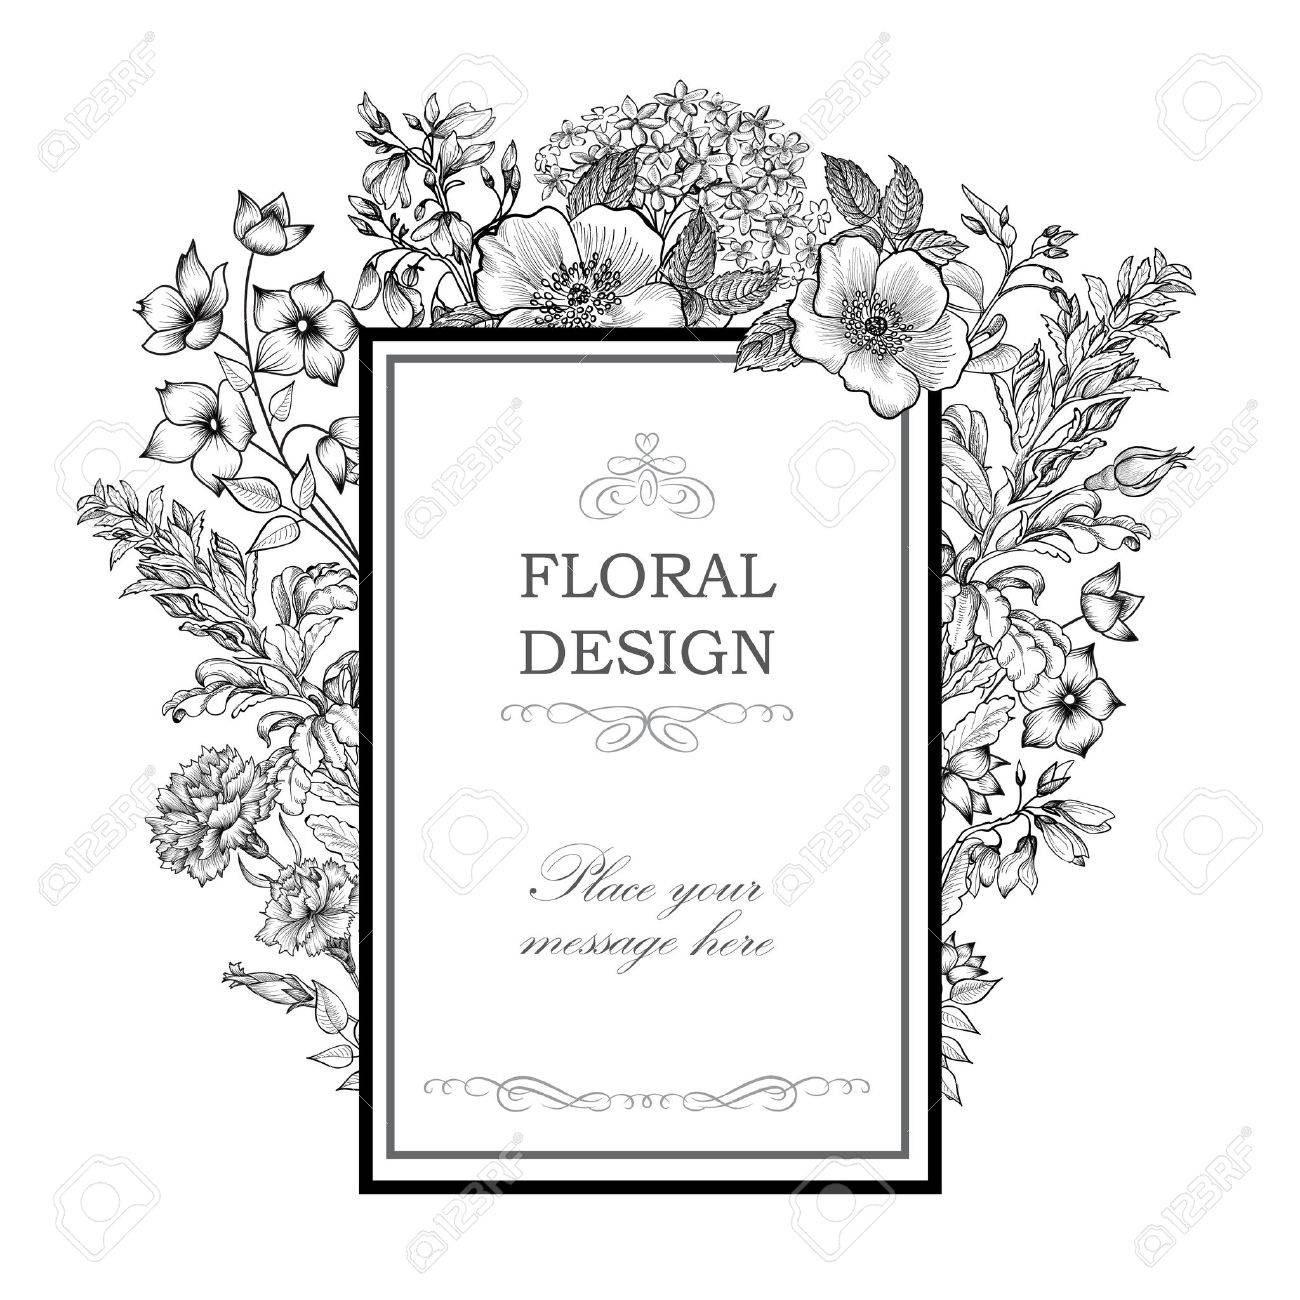 Floral background. Flower bouquet vintage cover. Flourish card with copy space. Stock Vector - 48447963